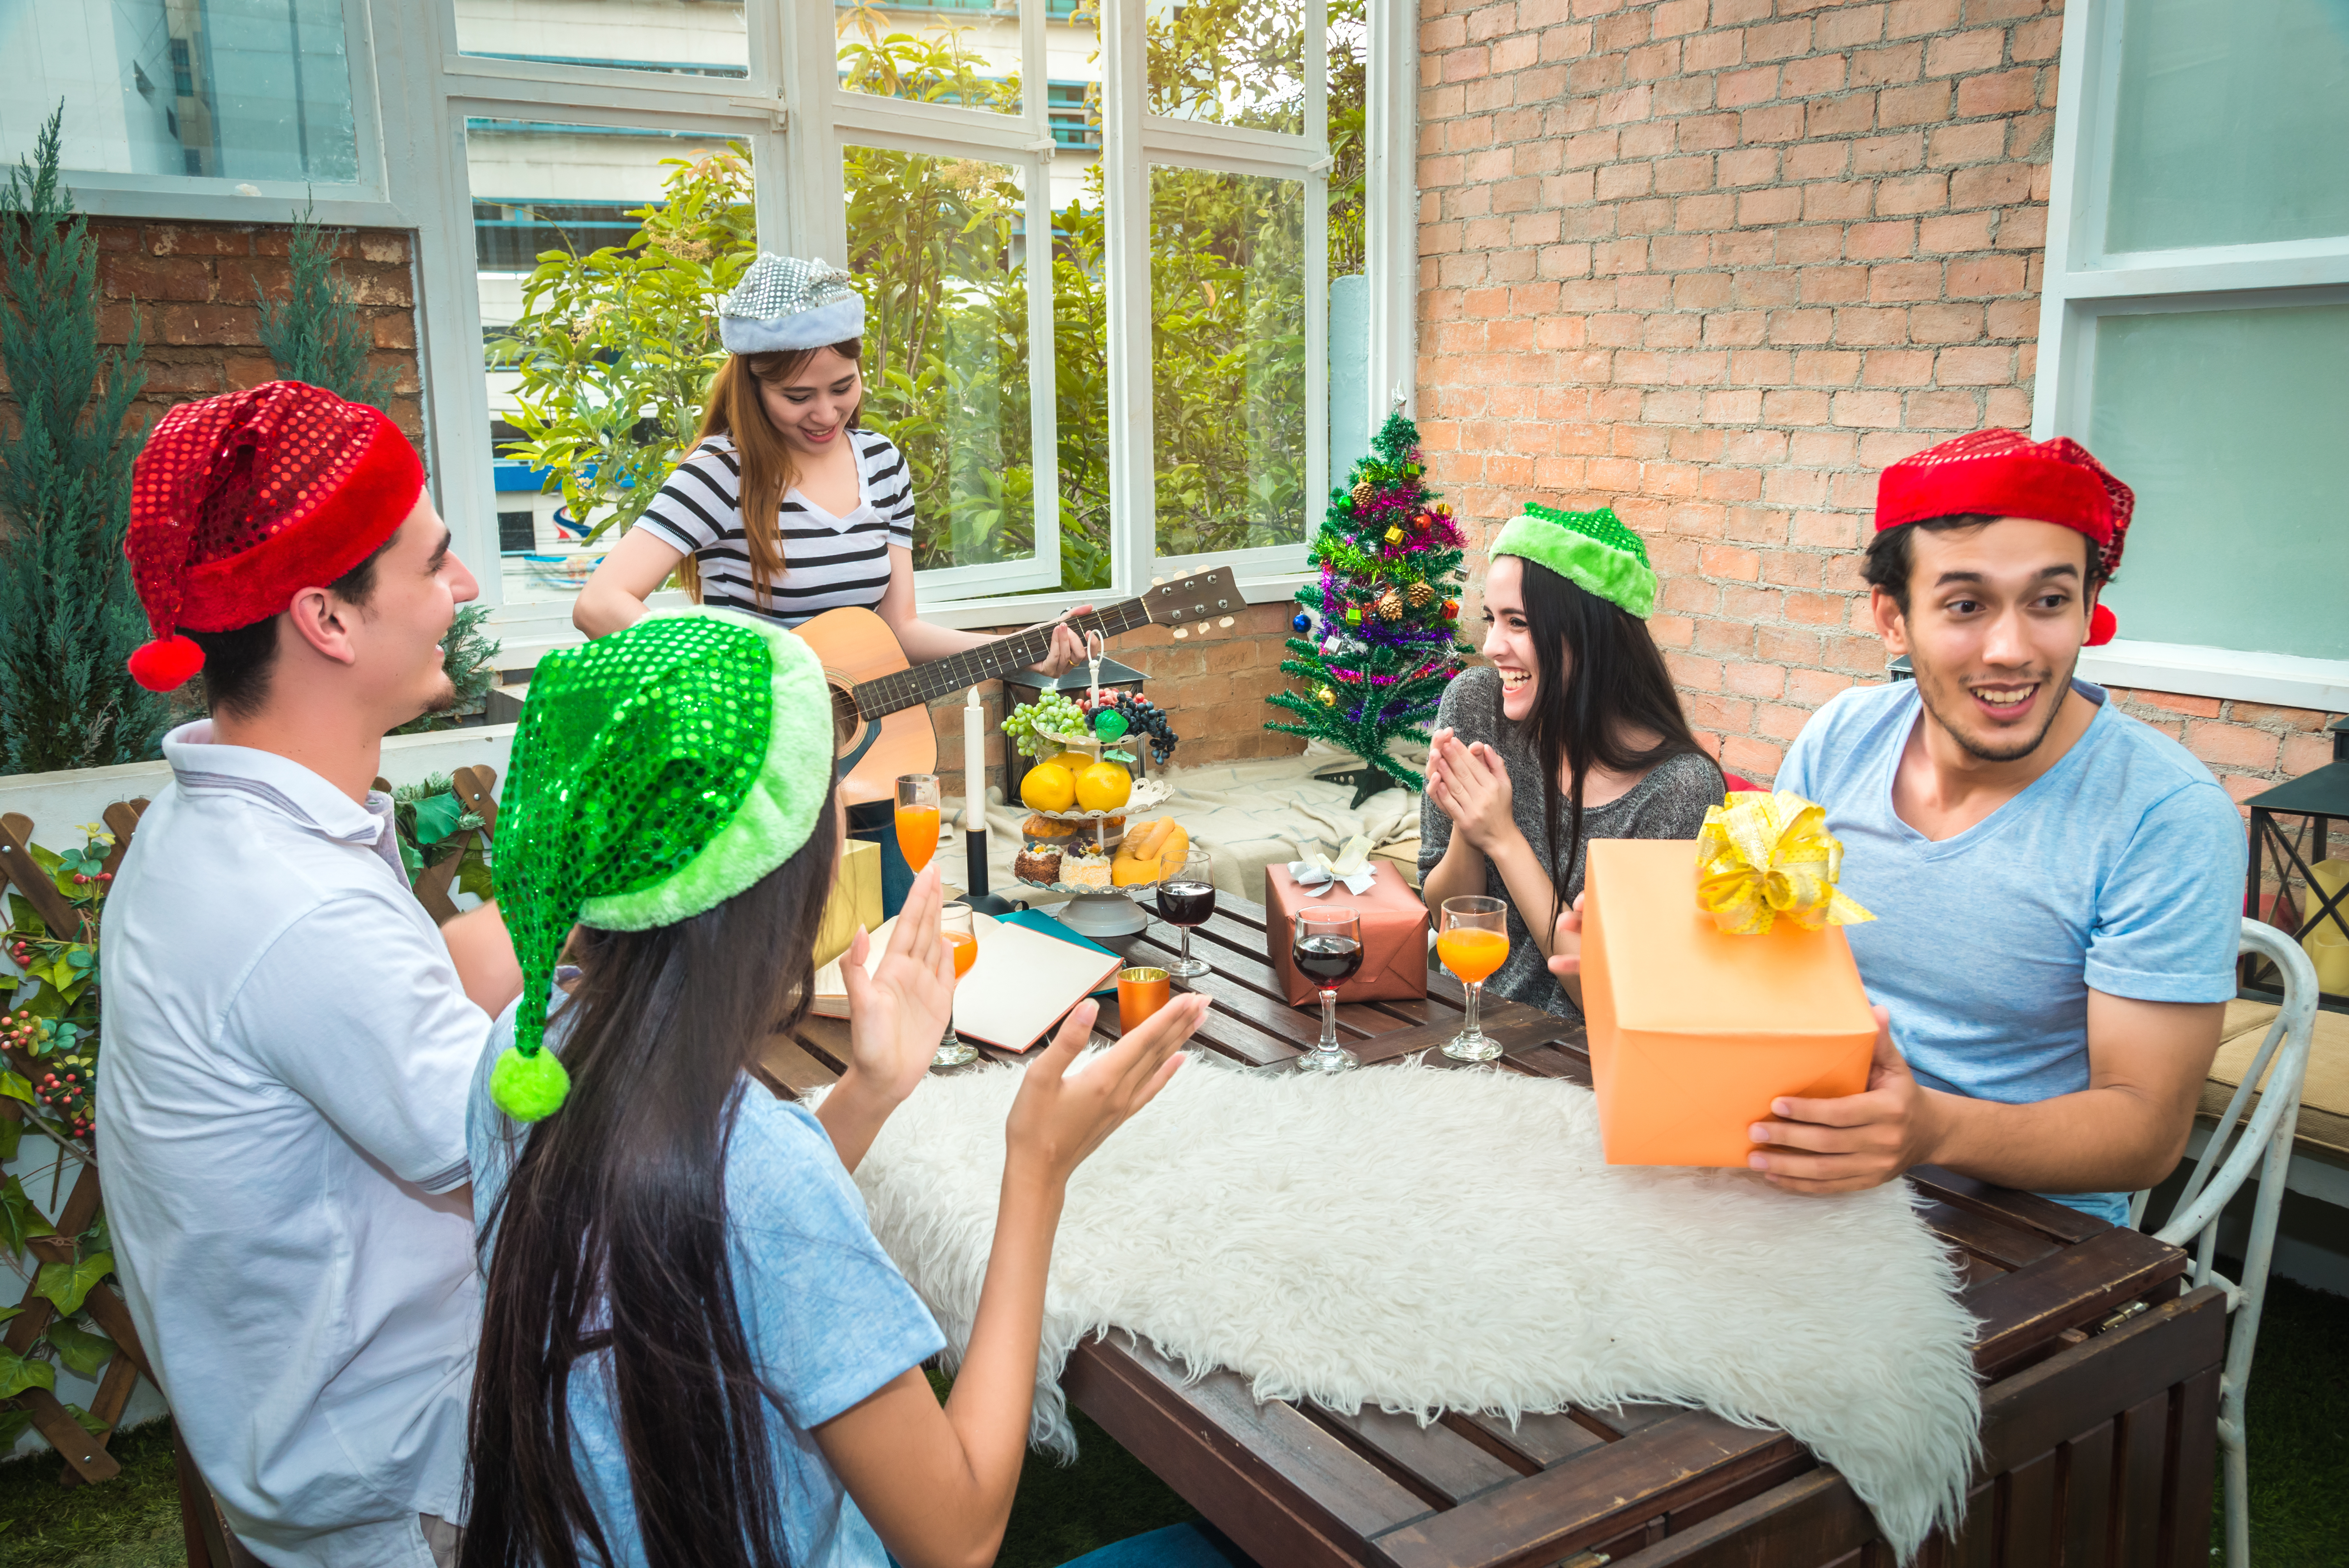 Top 5 Raunchy Christmas Party Games That Will Make Your Family Cringe